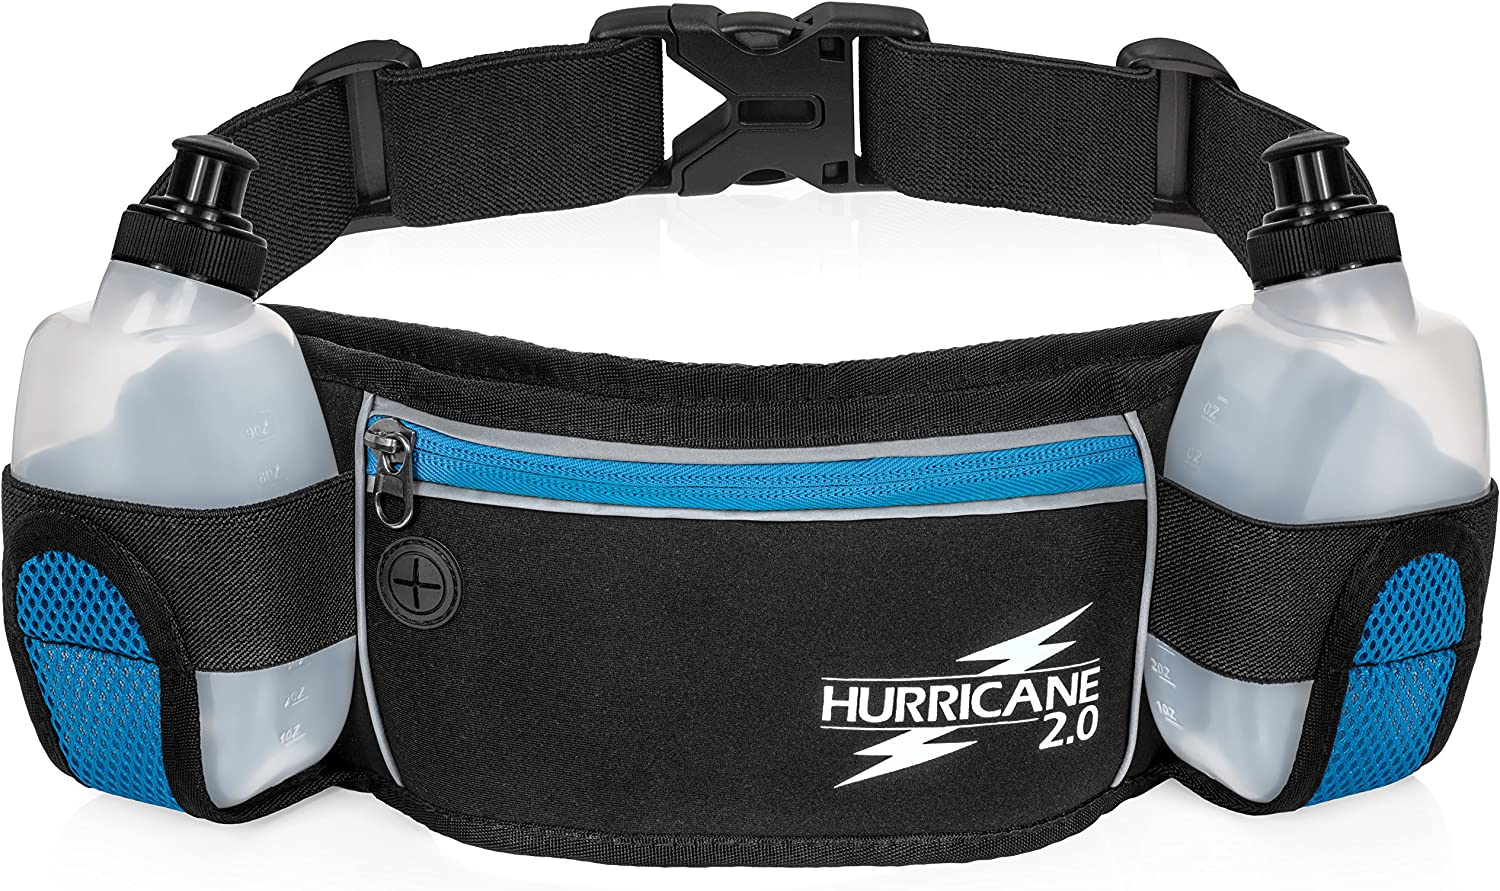 Water Bottle Running Belt by Hurricane, High Visibility Reflective Lightweight Water Resistant Exercise Pack, Adjustable for Men & Women, Non-Slip Material, Large Zipper Pocket Fits iPhone & Samsung